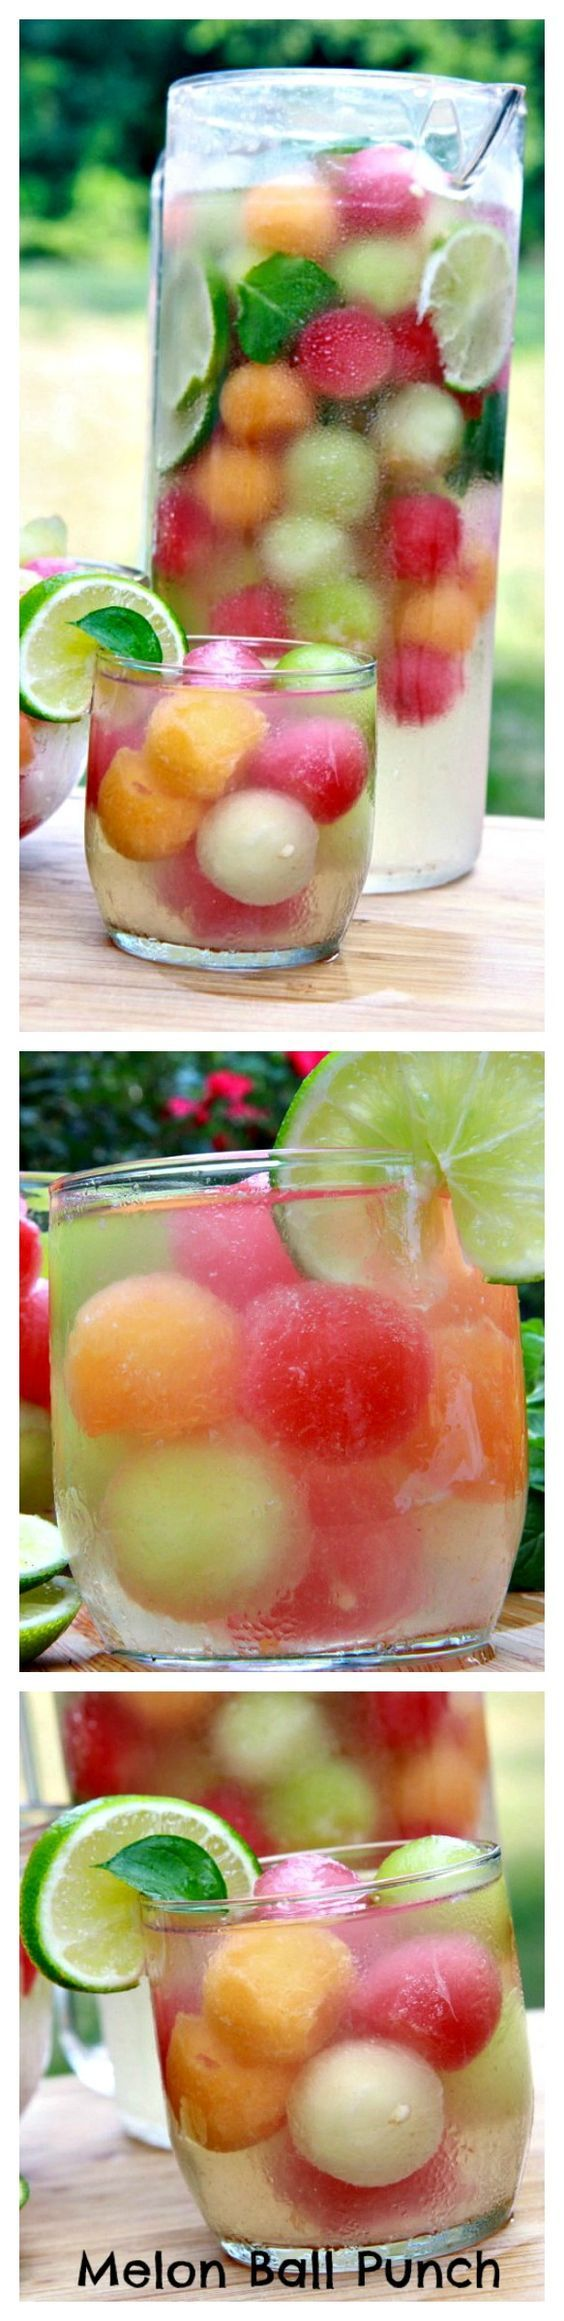 Tested and Proven Natural Belly Slimming Detox Water Recipe. 3 simple ingredients to help increase your metabolism in one easy step with AMAZING Results!